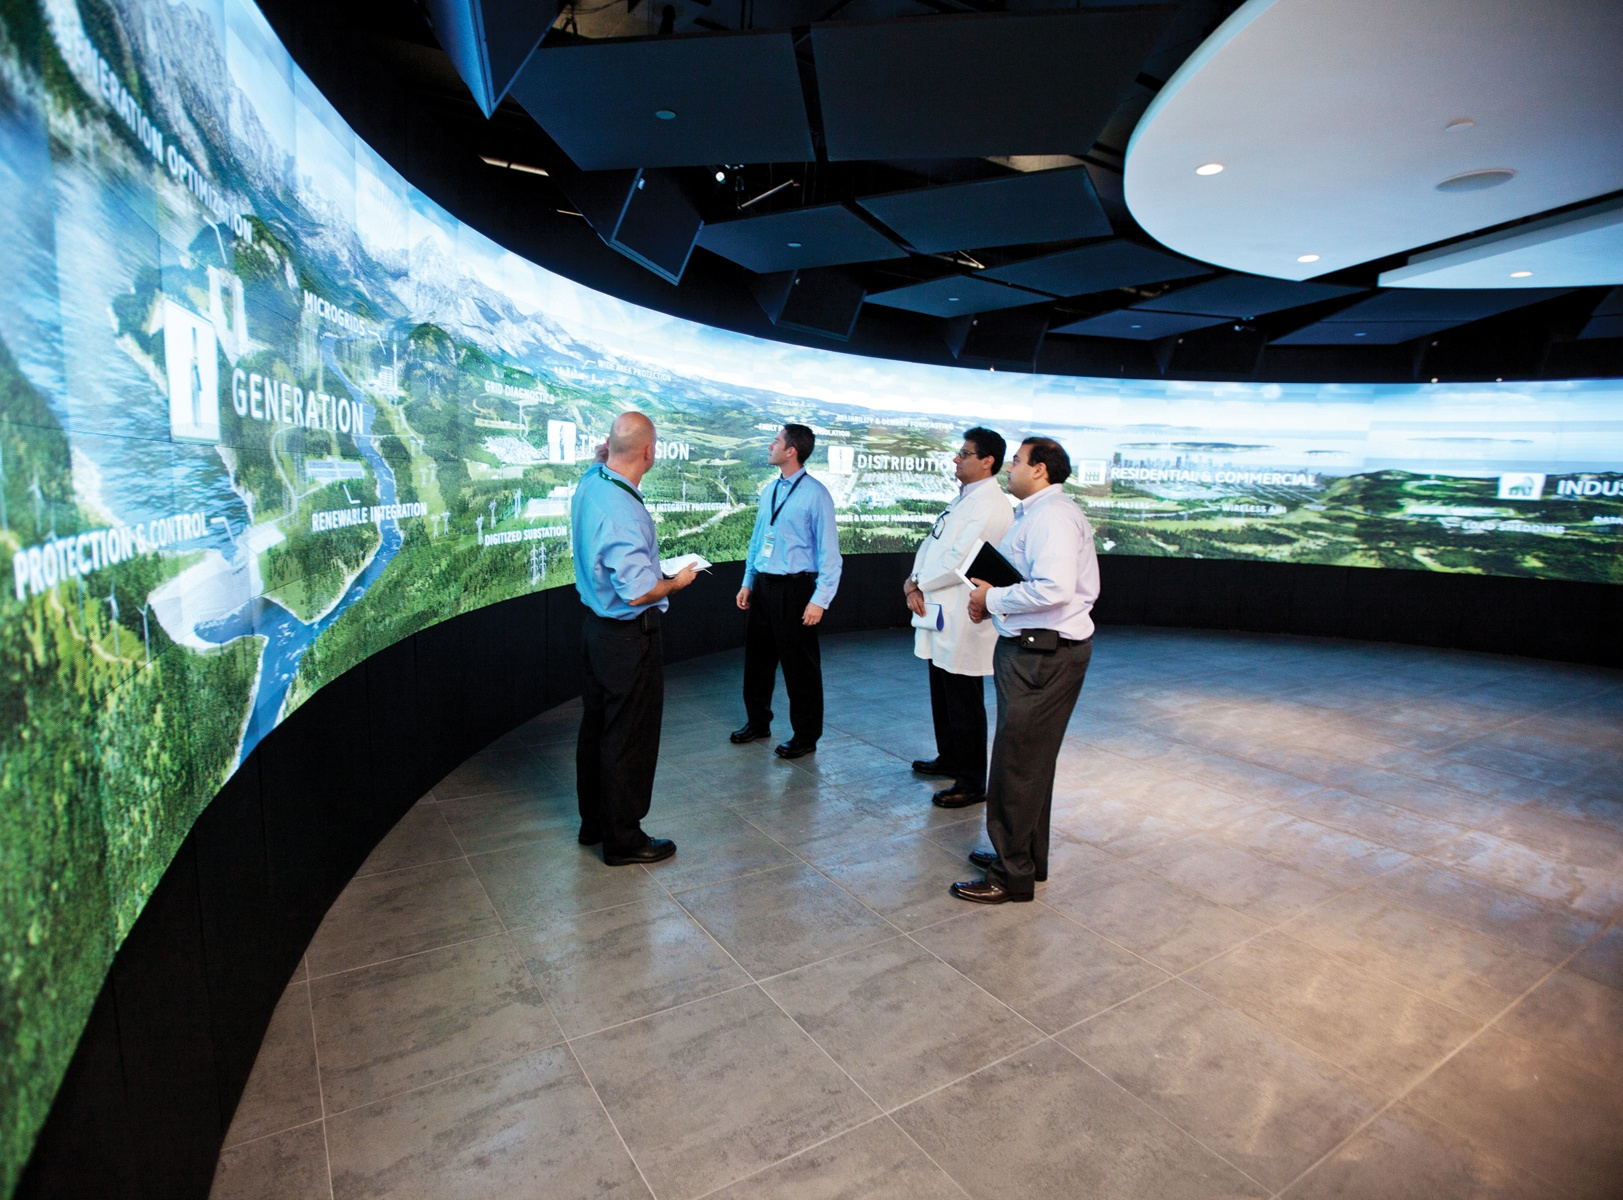 GE Showcases Prysm Video Wall in New Customer Experience Center